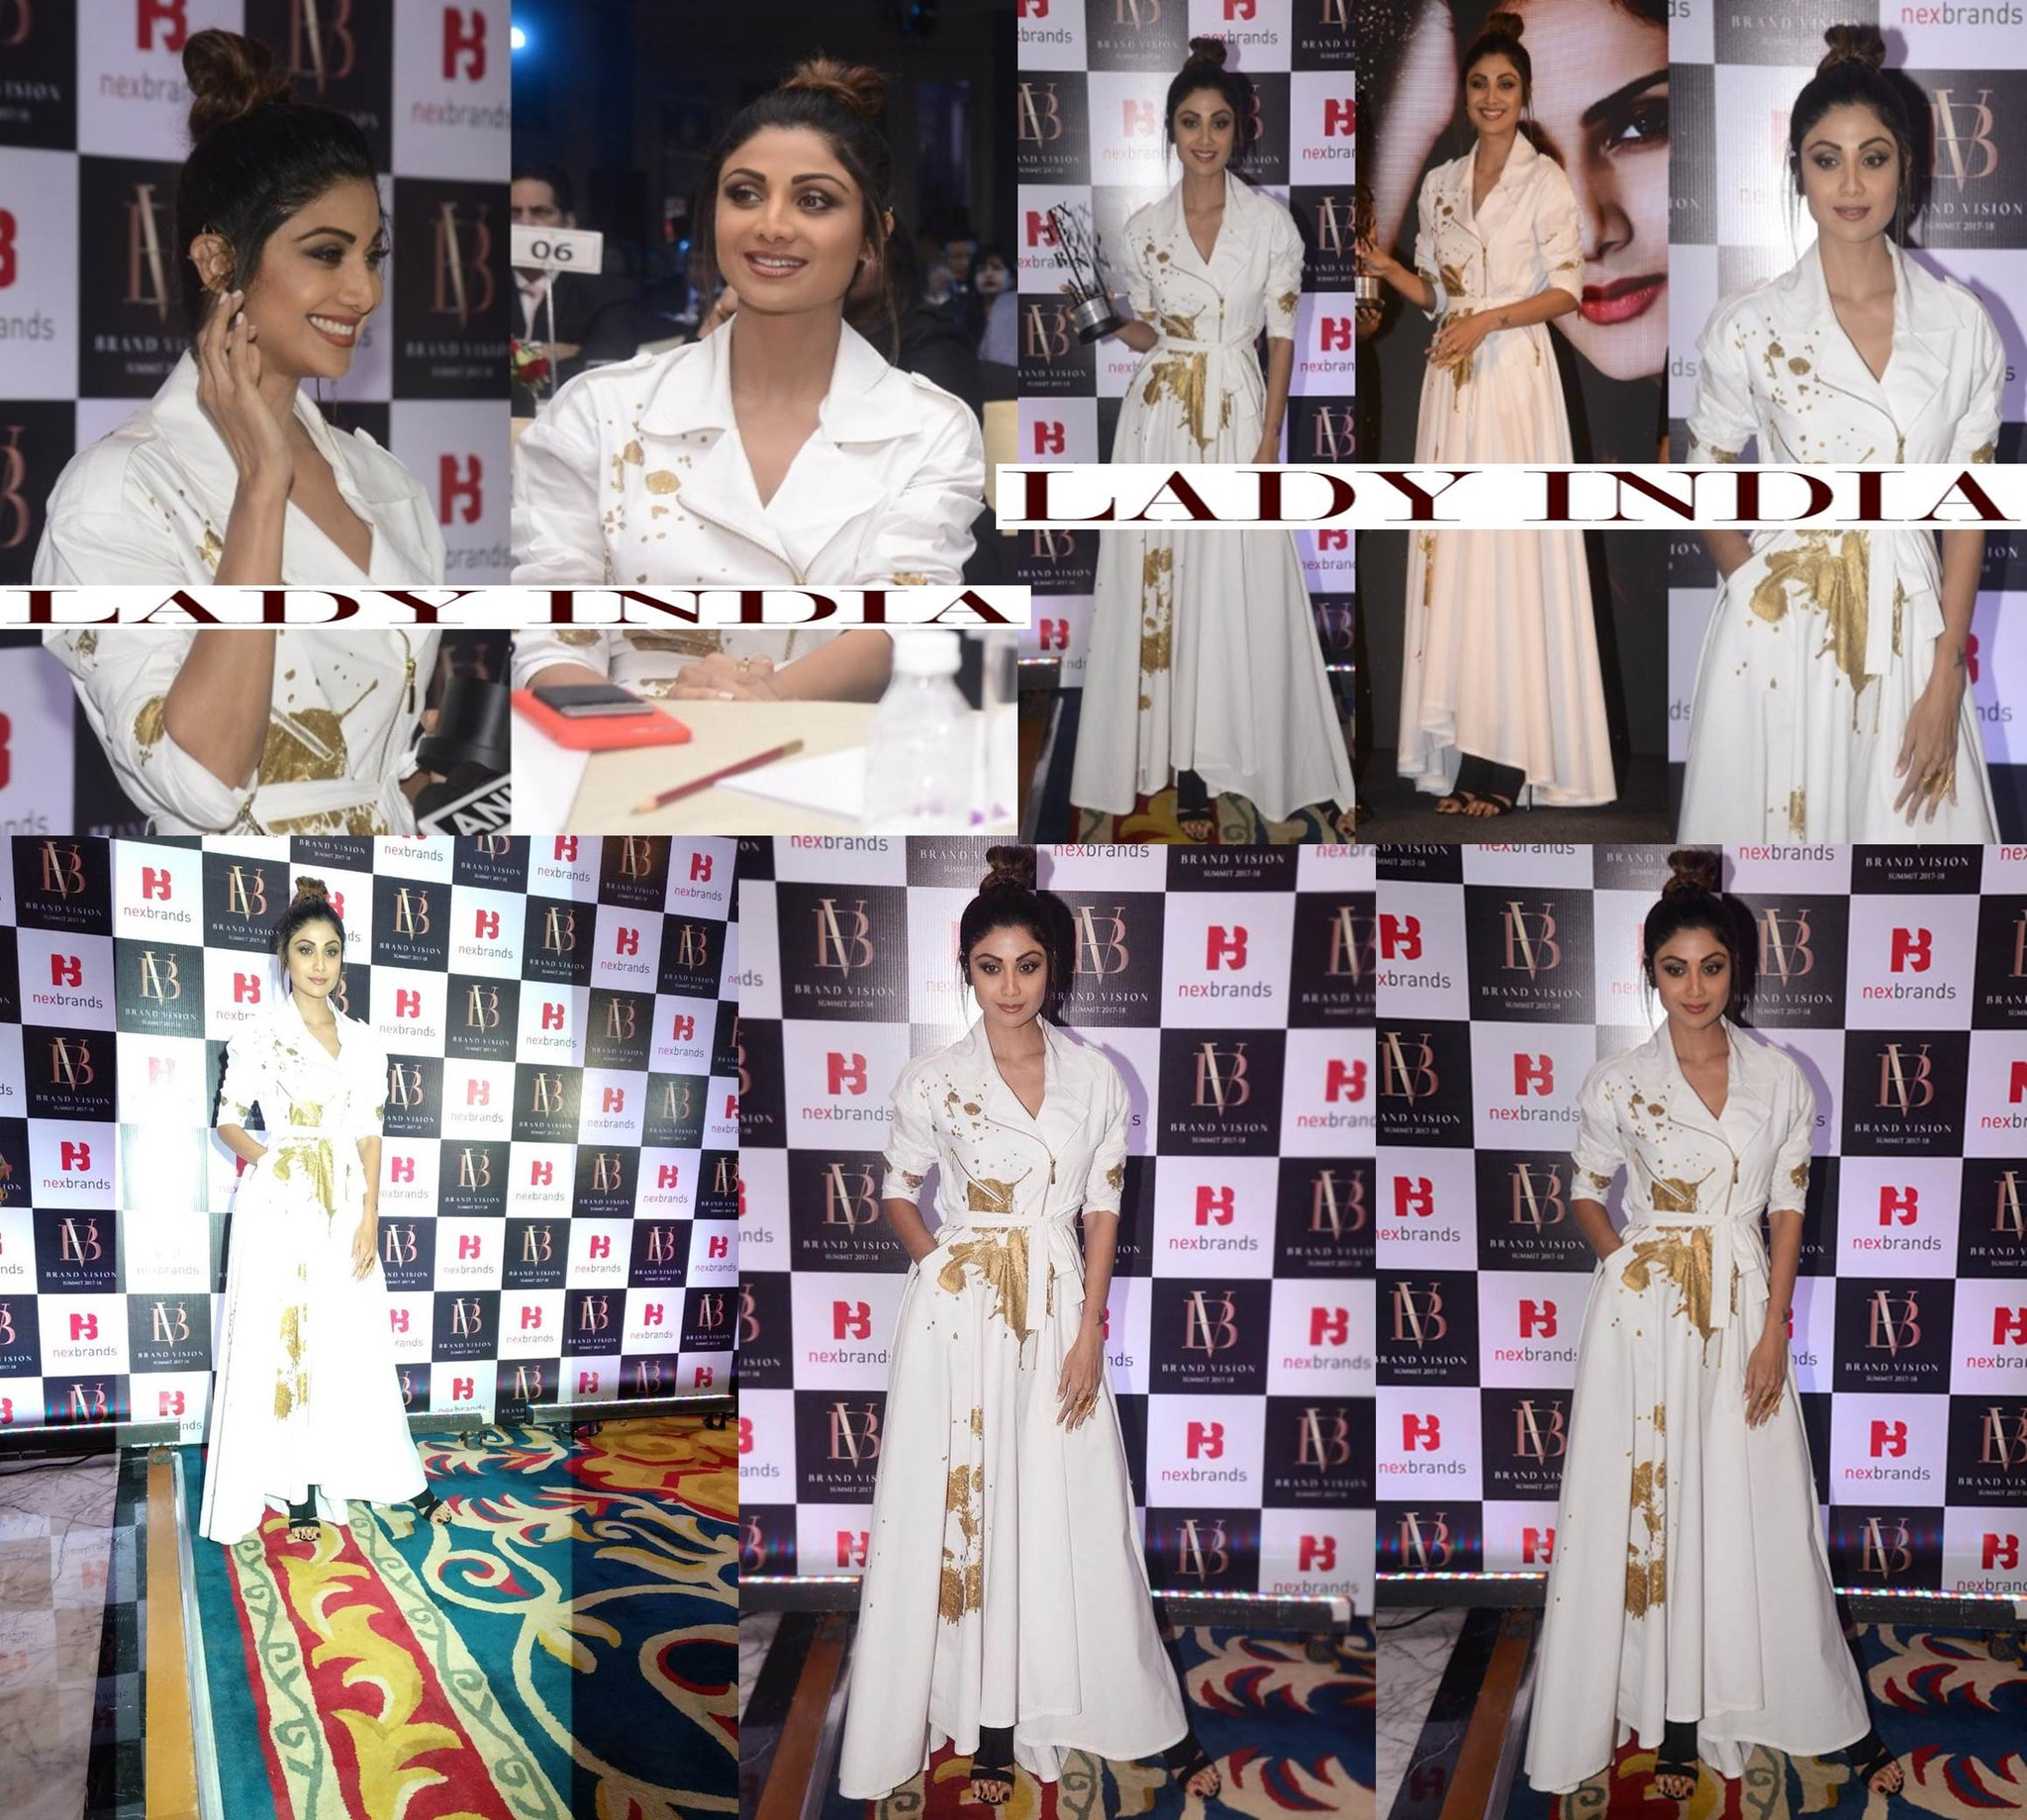 Shilpa Shetty Looked Graceful in Rajesh Pratap Singh's Designer Dress